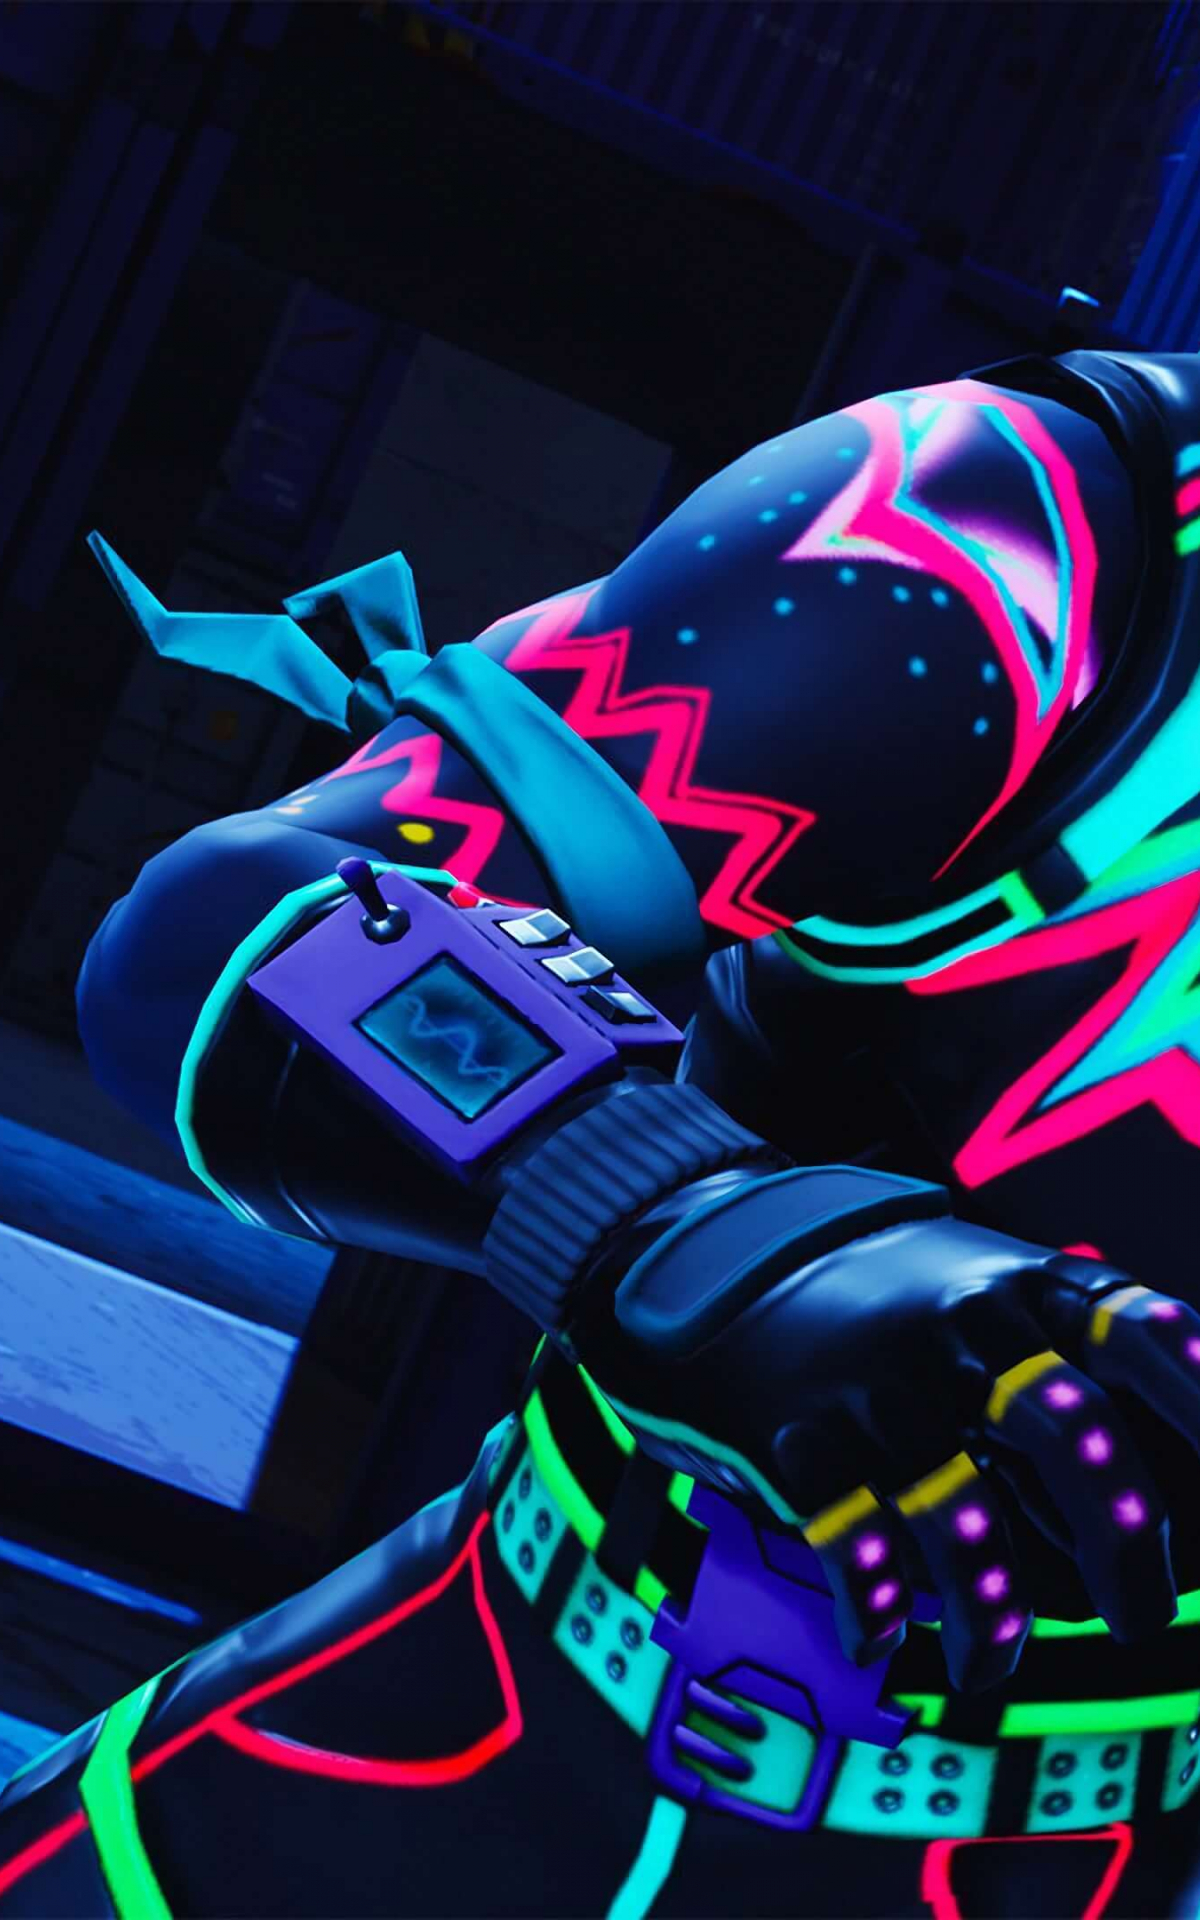 Free Download Fortnite Neon Skins Widescreen Wallpaper 64051 3840x2160px 3840x2160 For Your Desktop Mobile Tablet Explore 21 Fortnite Skins Wallpapers Fortnite Skins Wallpapers Best Fortnite Skins Wallpapers Football Fortnite Skins Wallpapers